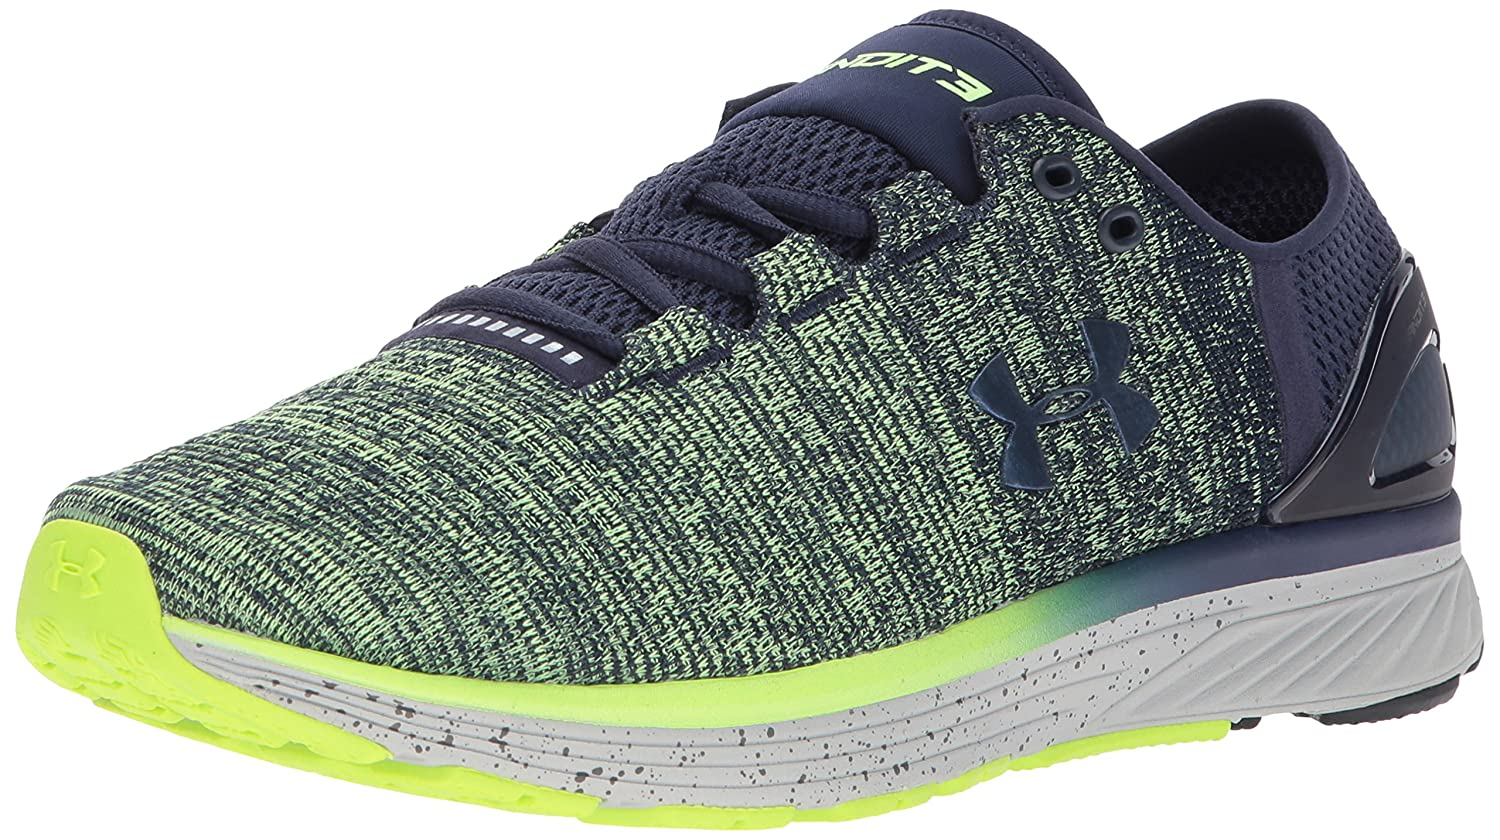 Under Armour Mens Charged Bandit 3 Running Shoe Under Armour Shoes 1295725